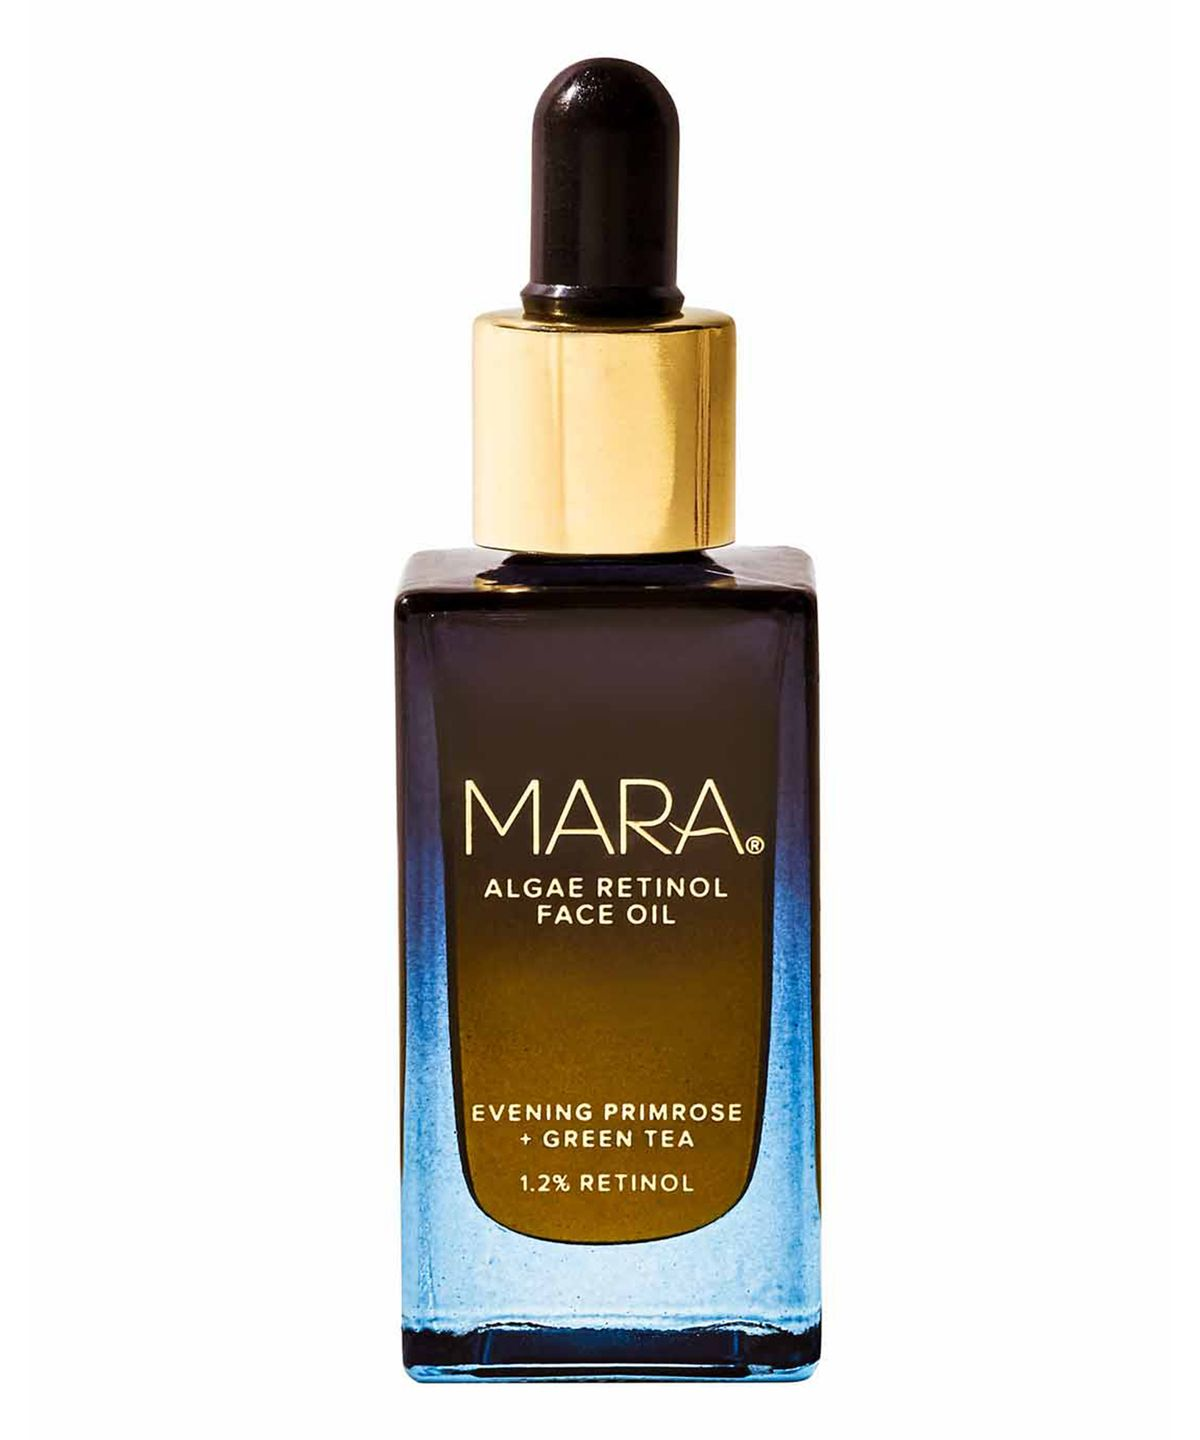 MARA Evening Primrose + Green Tea Algae Retinol Face Oil